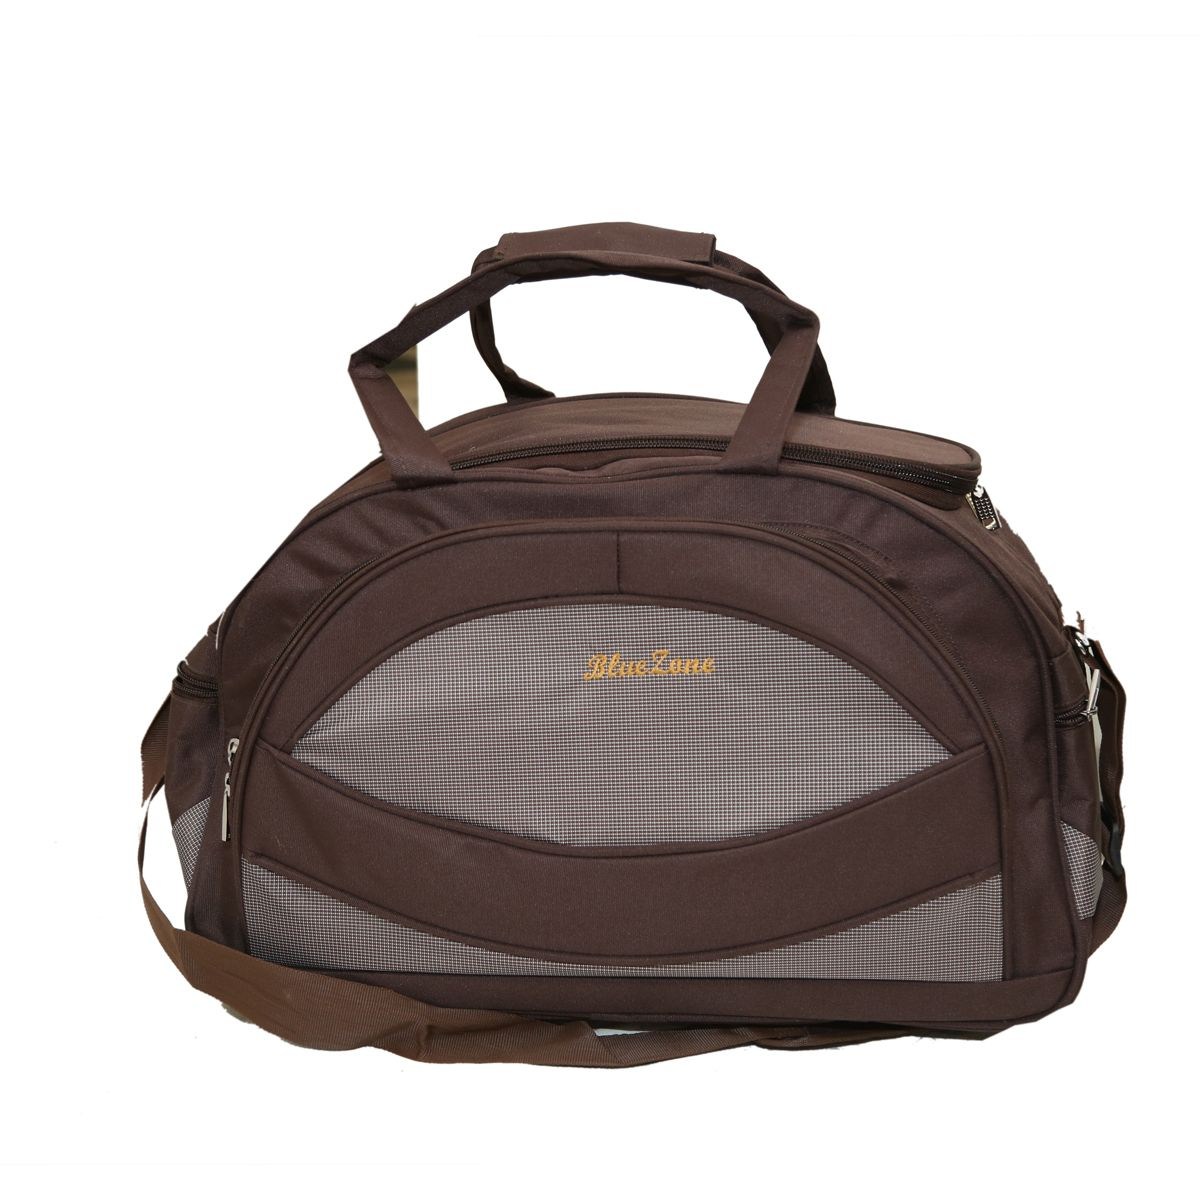 Kuber Industries™ Travel Duffle Bag,Luggage Bag,Shoulder Bag,Carry Bag with Inner Pocket- Brown (DUFFB07)